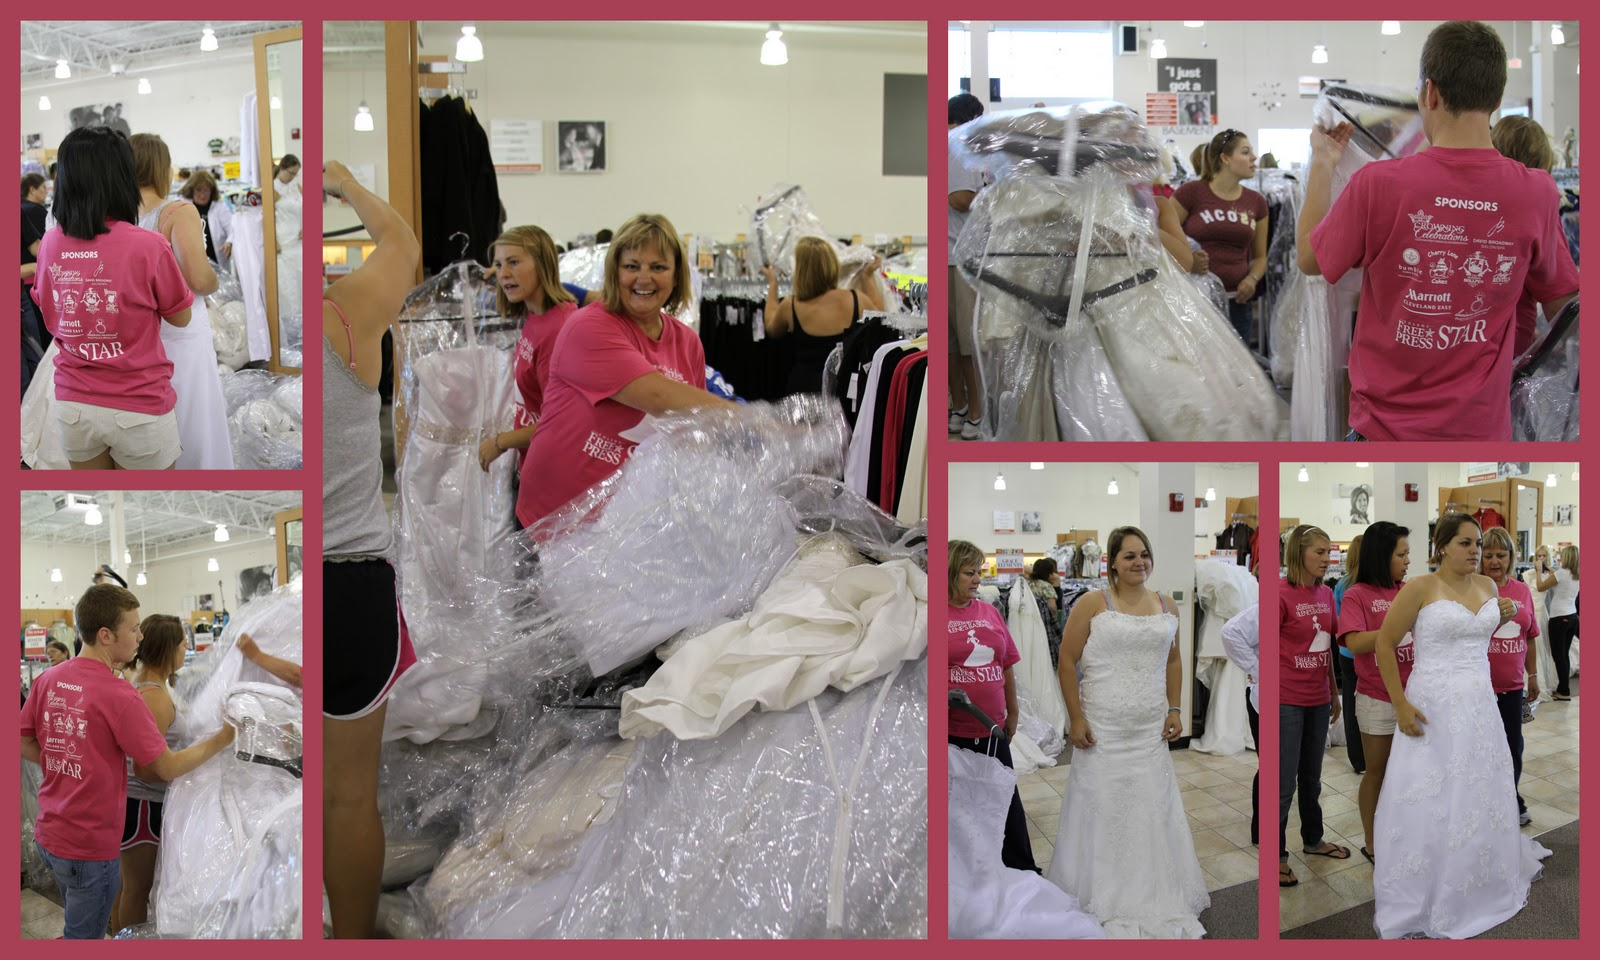 Wedding Dresses In Cleveland Tennessee - Overlay Wedding Dresses